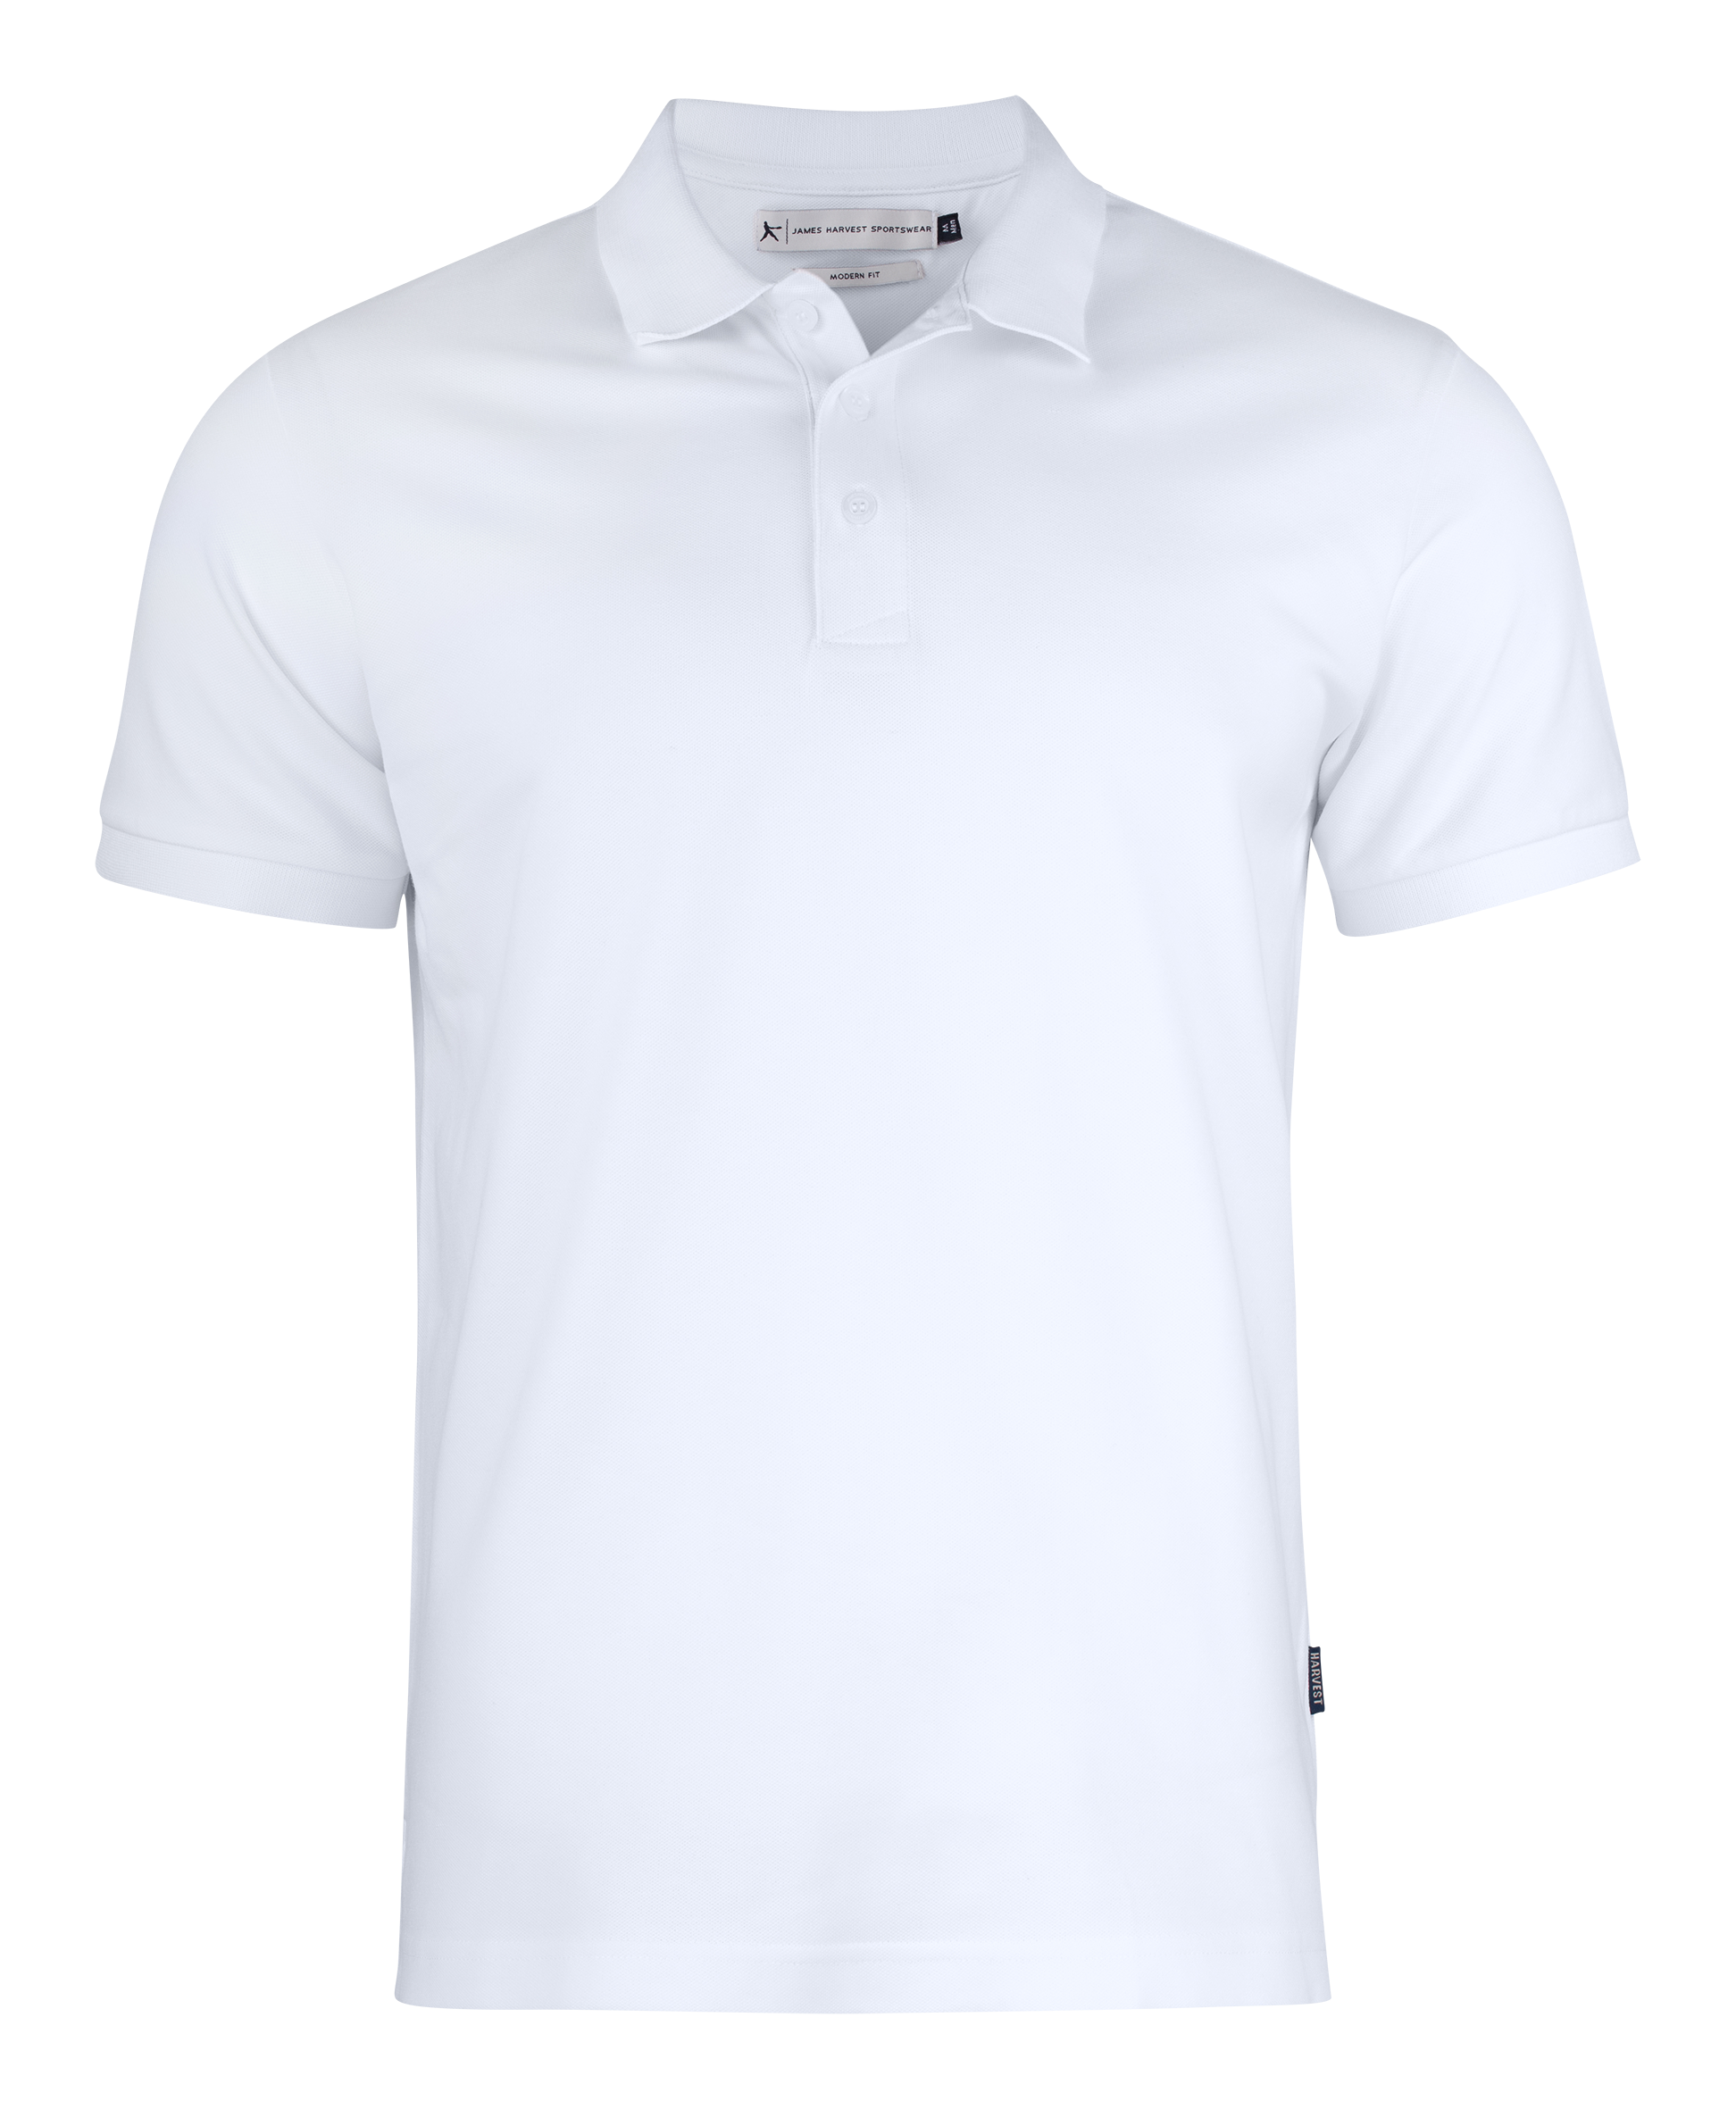 Sunset Modern Polo in White